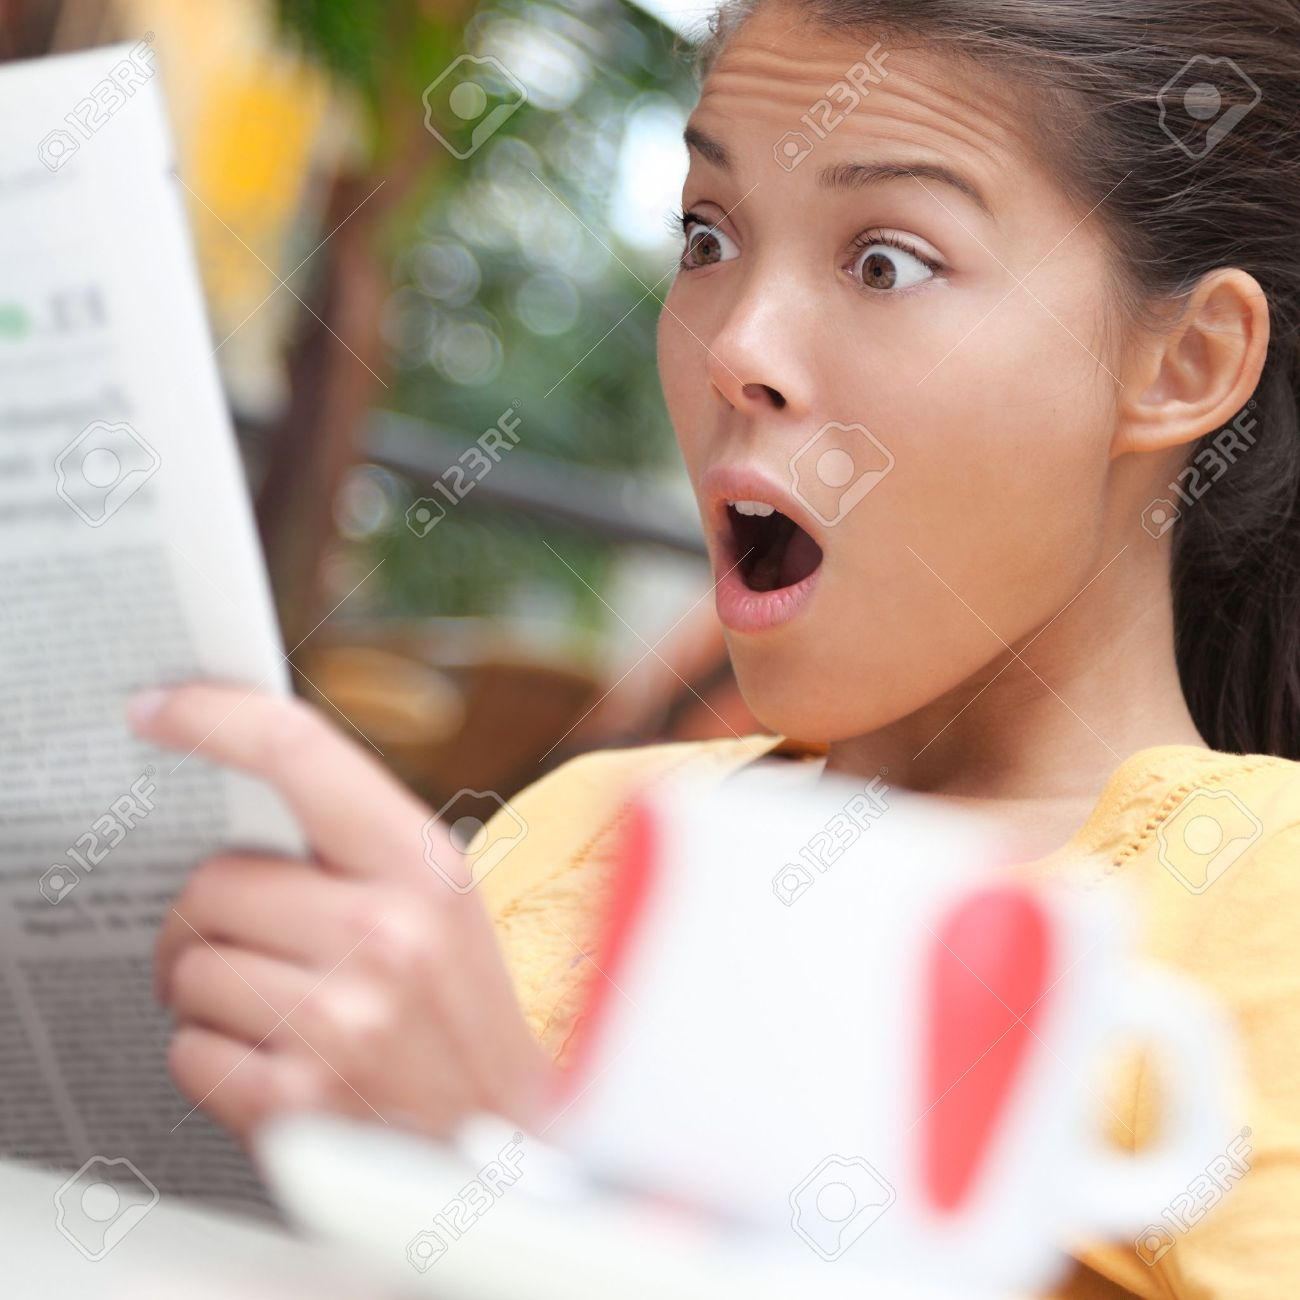 Woman shocked over shocking news in newspaper (gossip, stock market...). Young woman reading the paper on cafe outside. Stock Photo - 7439161